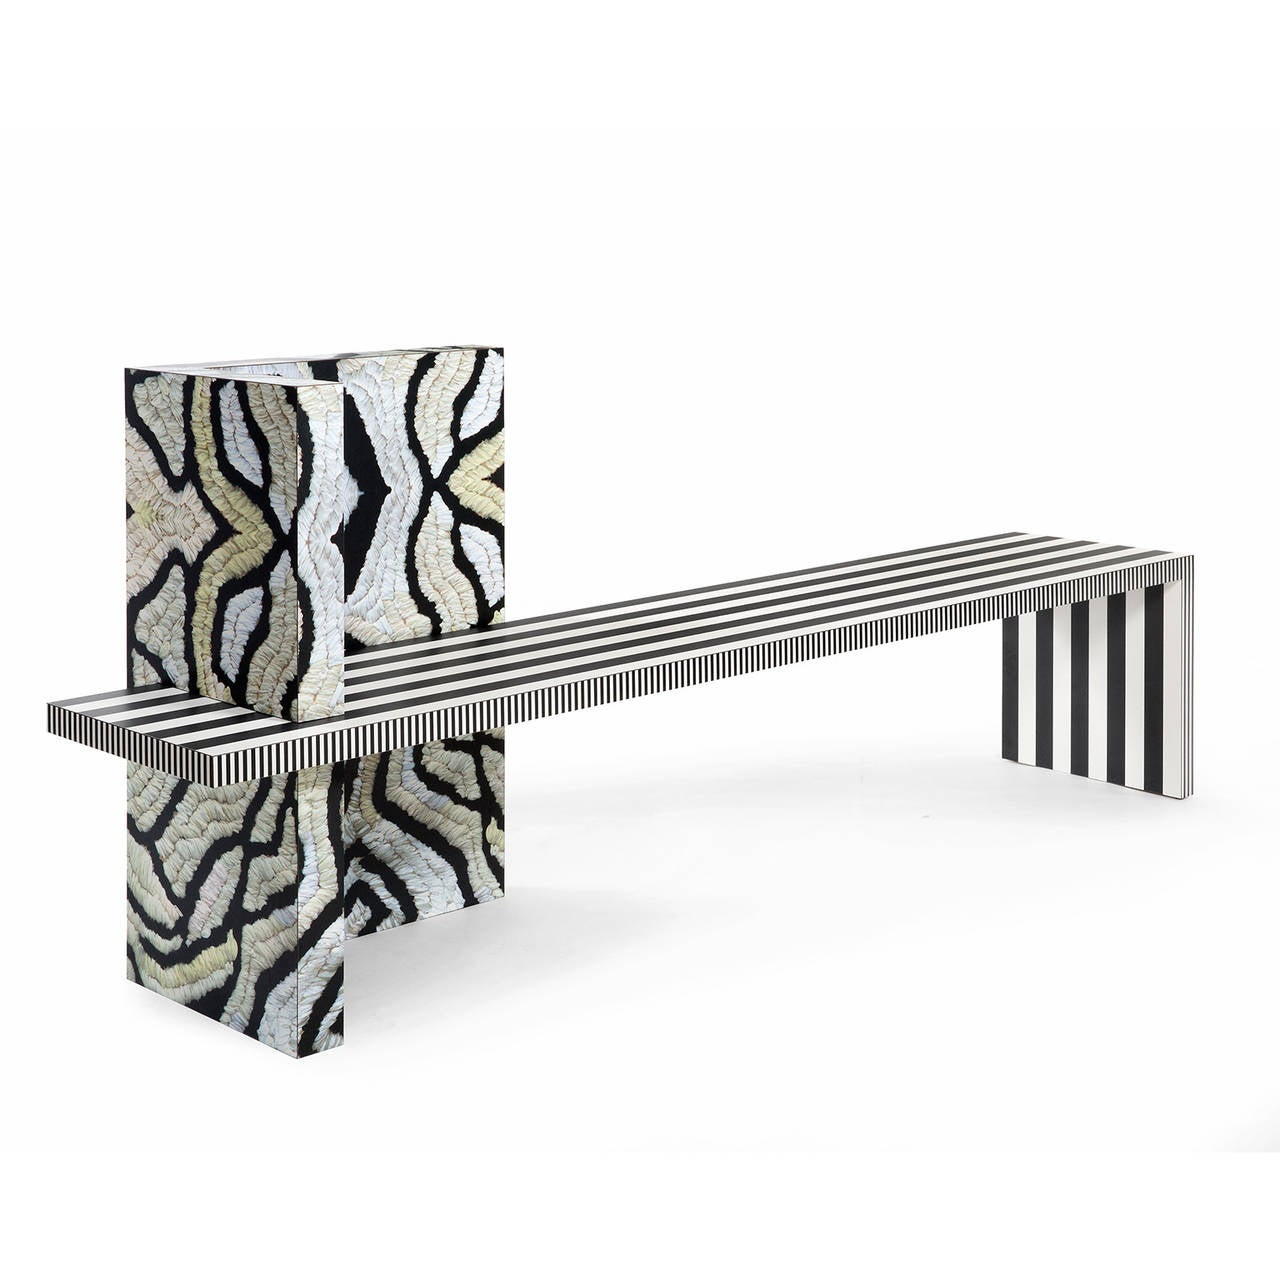 American Memphis Inspired Bench Neo Laminati Collection For Sale